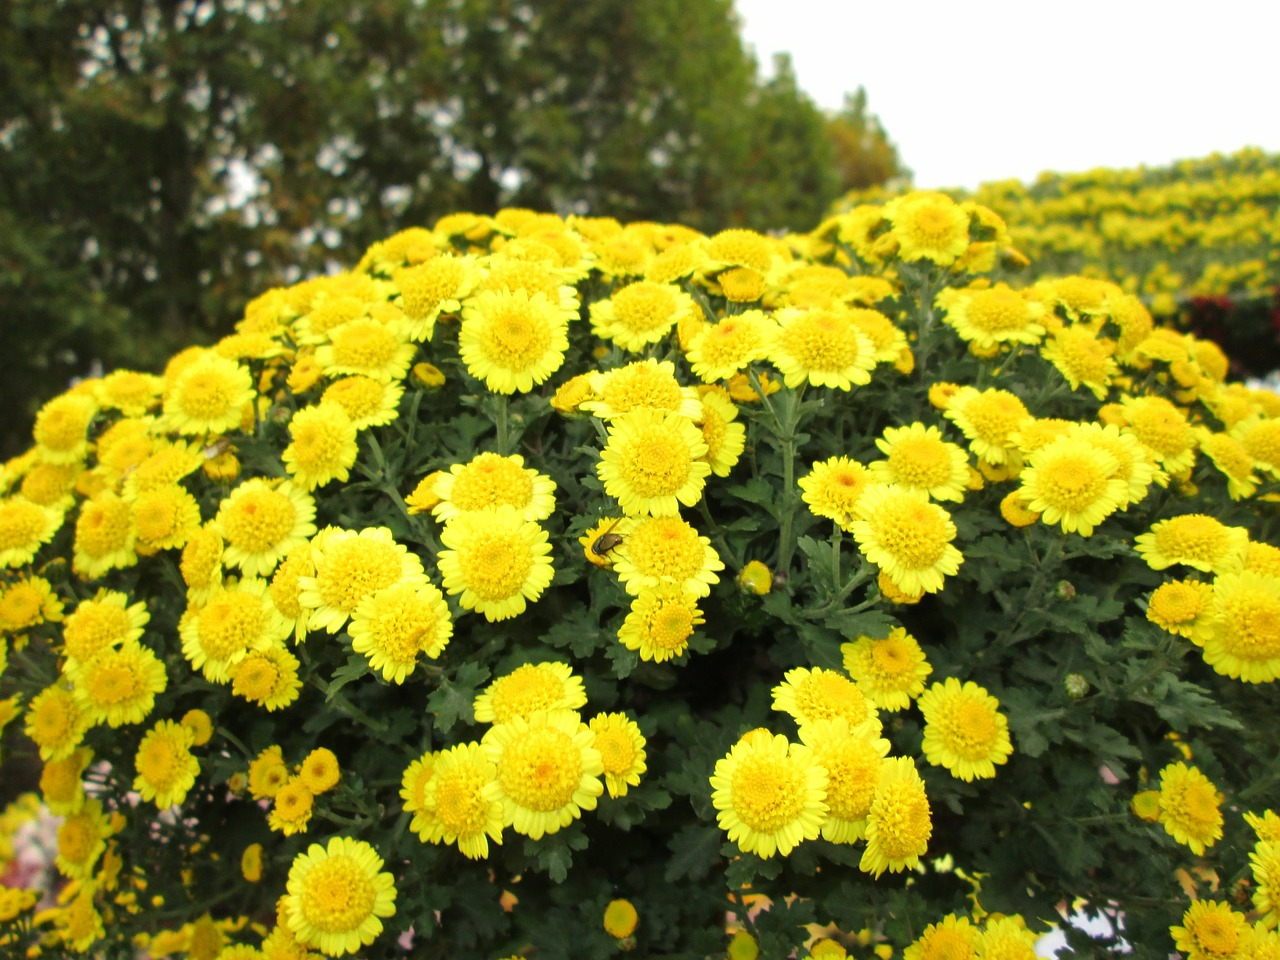 chrysanthemum,plant,park,yellow,free pictures, free photos, free images, royalty free, free illustrations, public domain